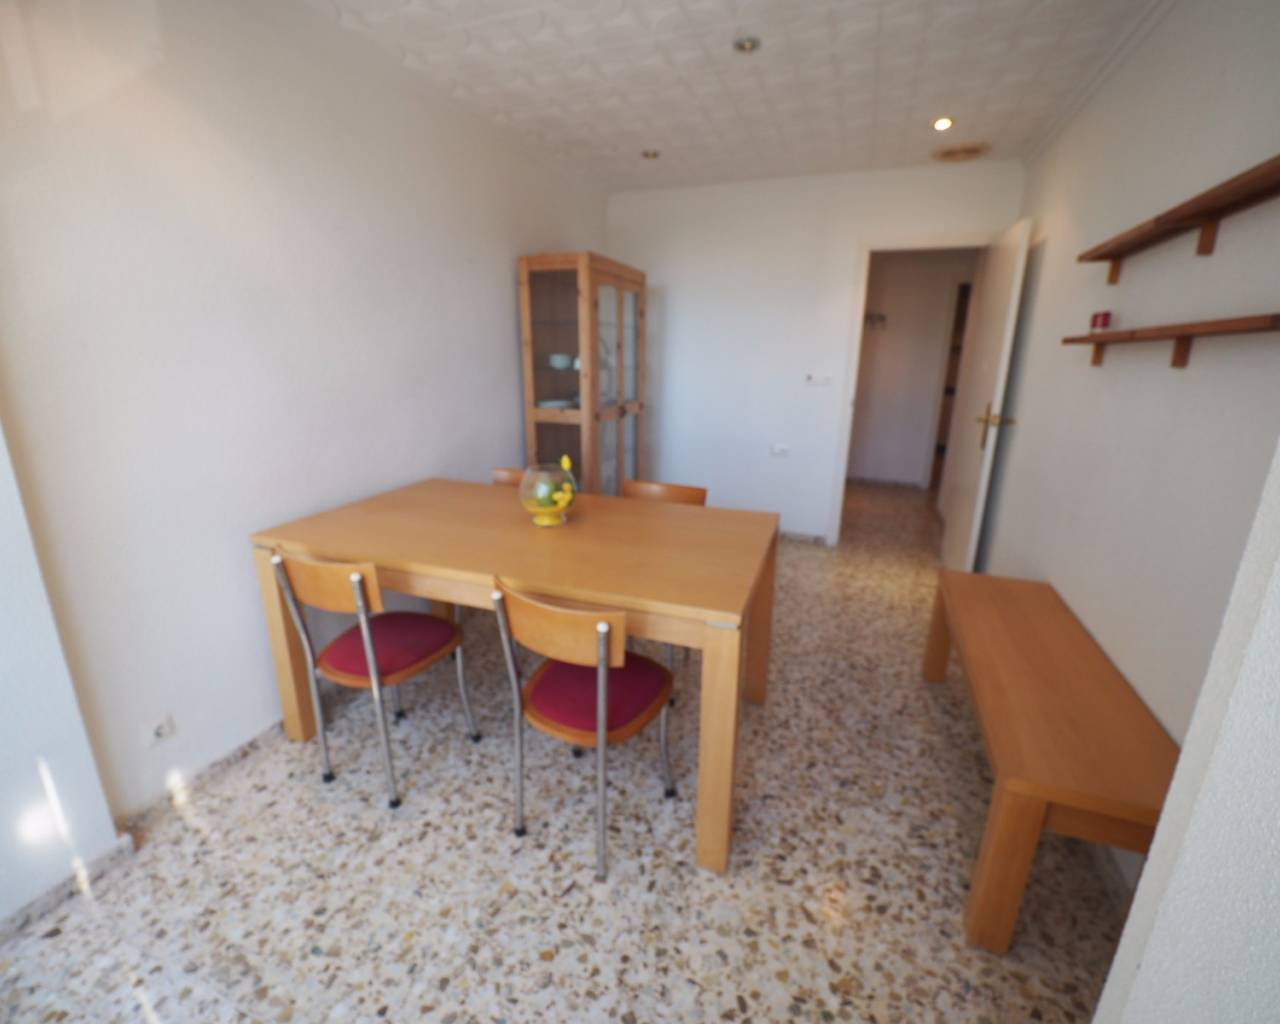 Annars vegar - Apartment/Flat - Altet - El Altet